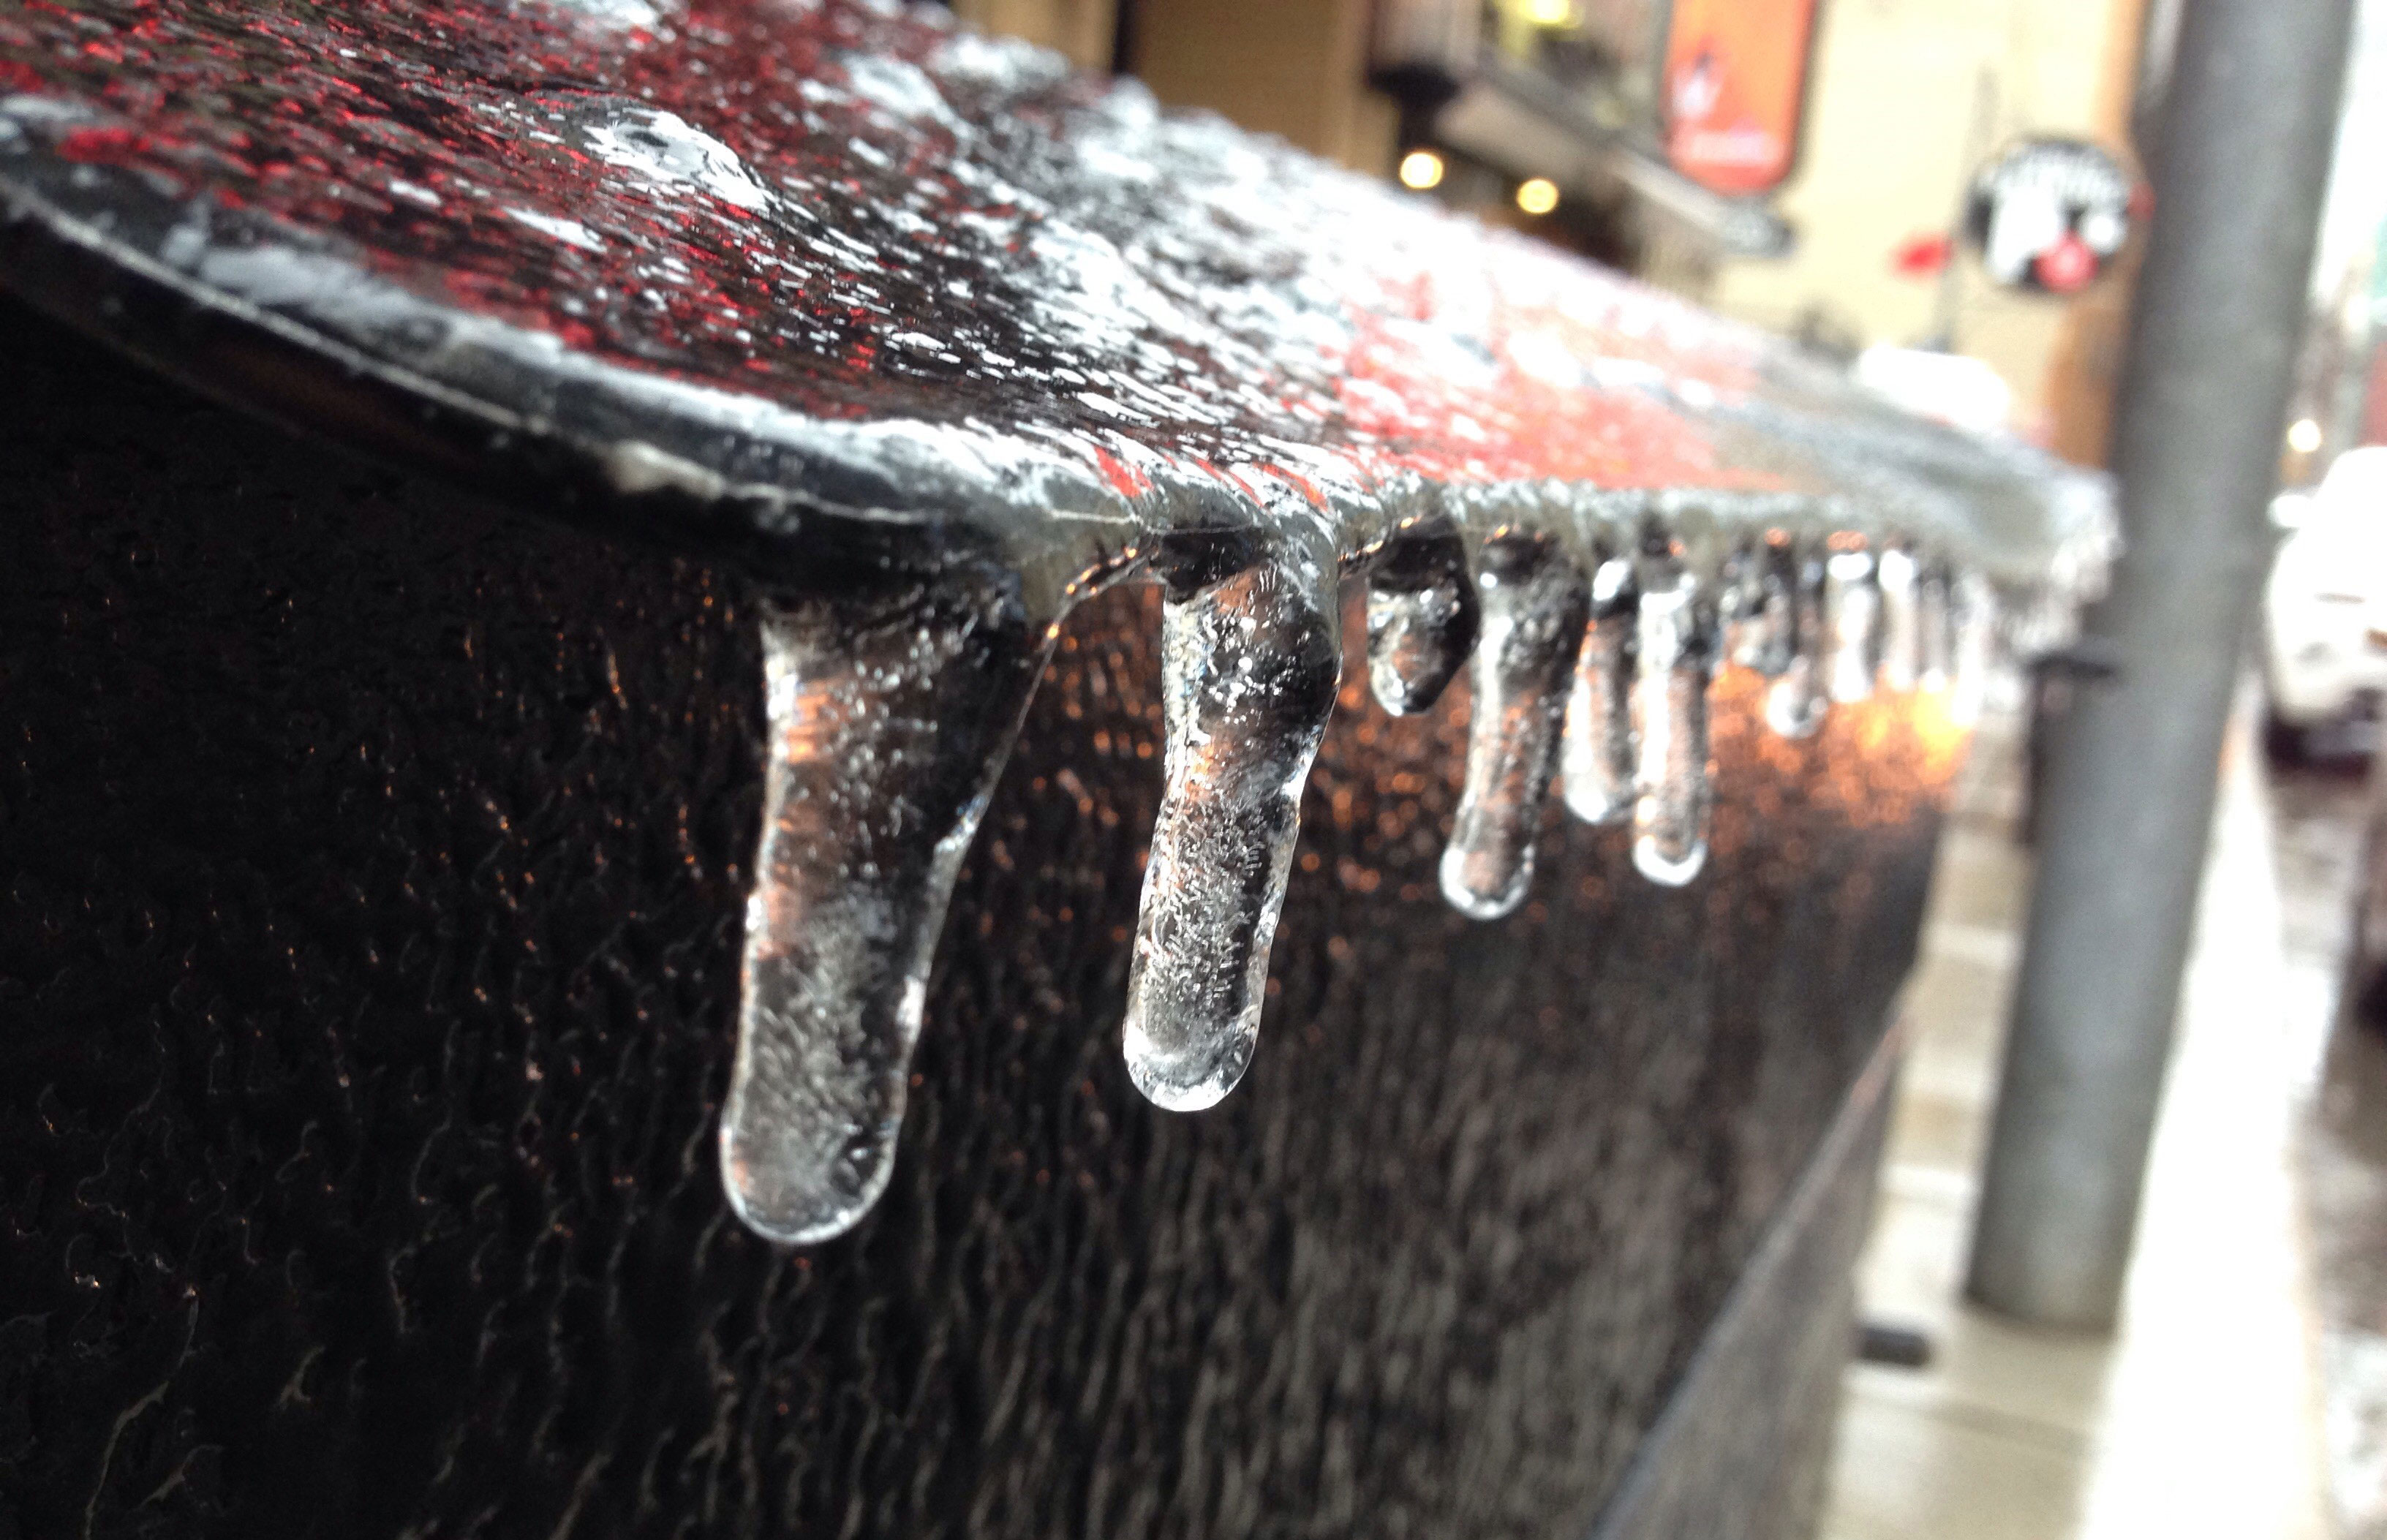 Prepare for a blast of wintry weather and freezing rain on Thursday